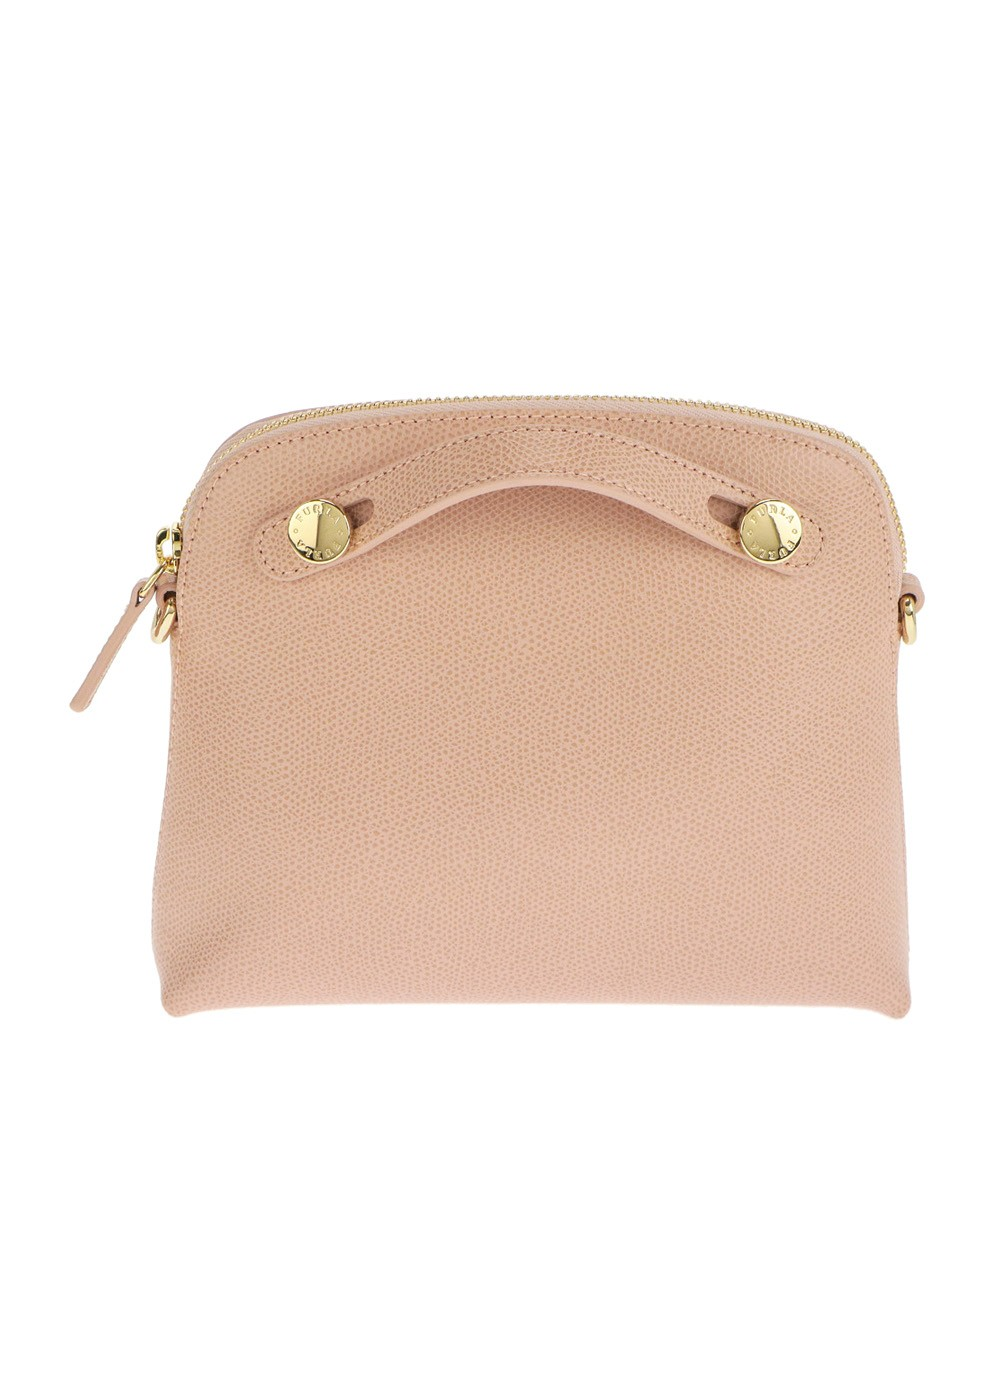 【最大50%OFF】PIPER MINI CROSSBODY【7/17迄】|MOONSTONE|ショルダーバッグ|FURLA(U)